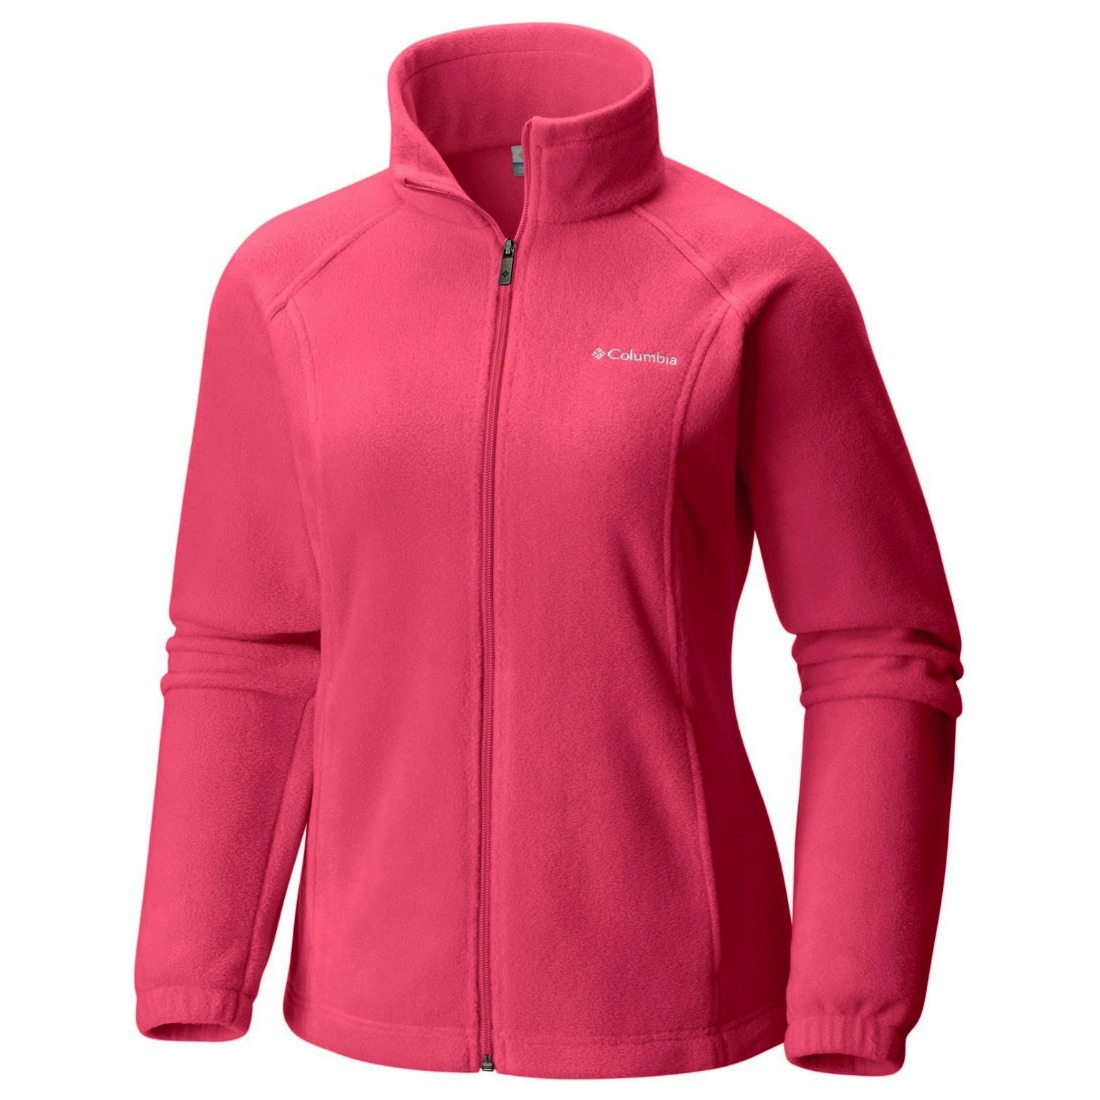 Columbia New Women's Original Mock Neck Zip Up Warm Winter Fleece Jacket